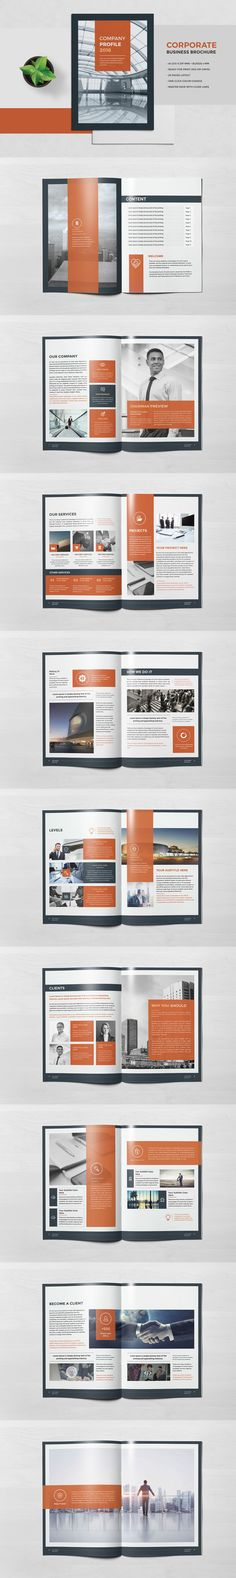 Corporate Business Brochure Template InDesign INDD - 20 Pages